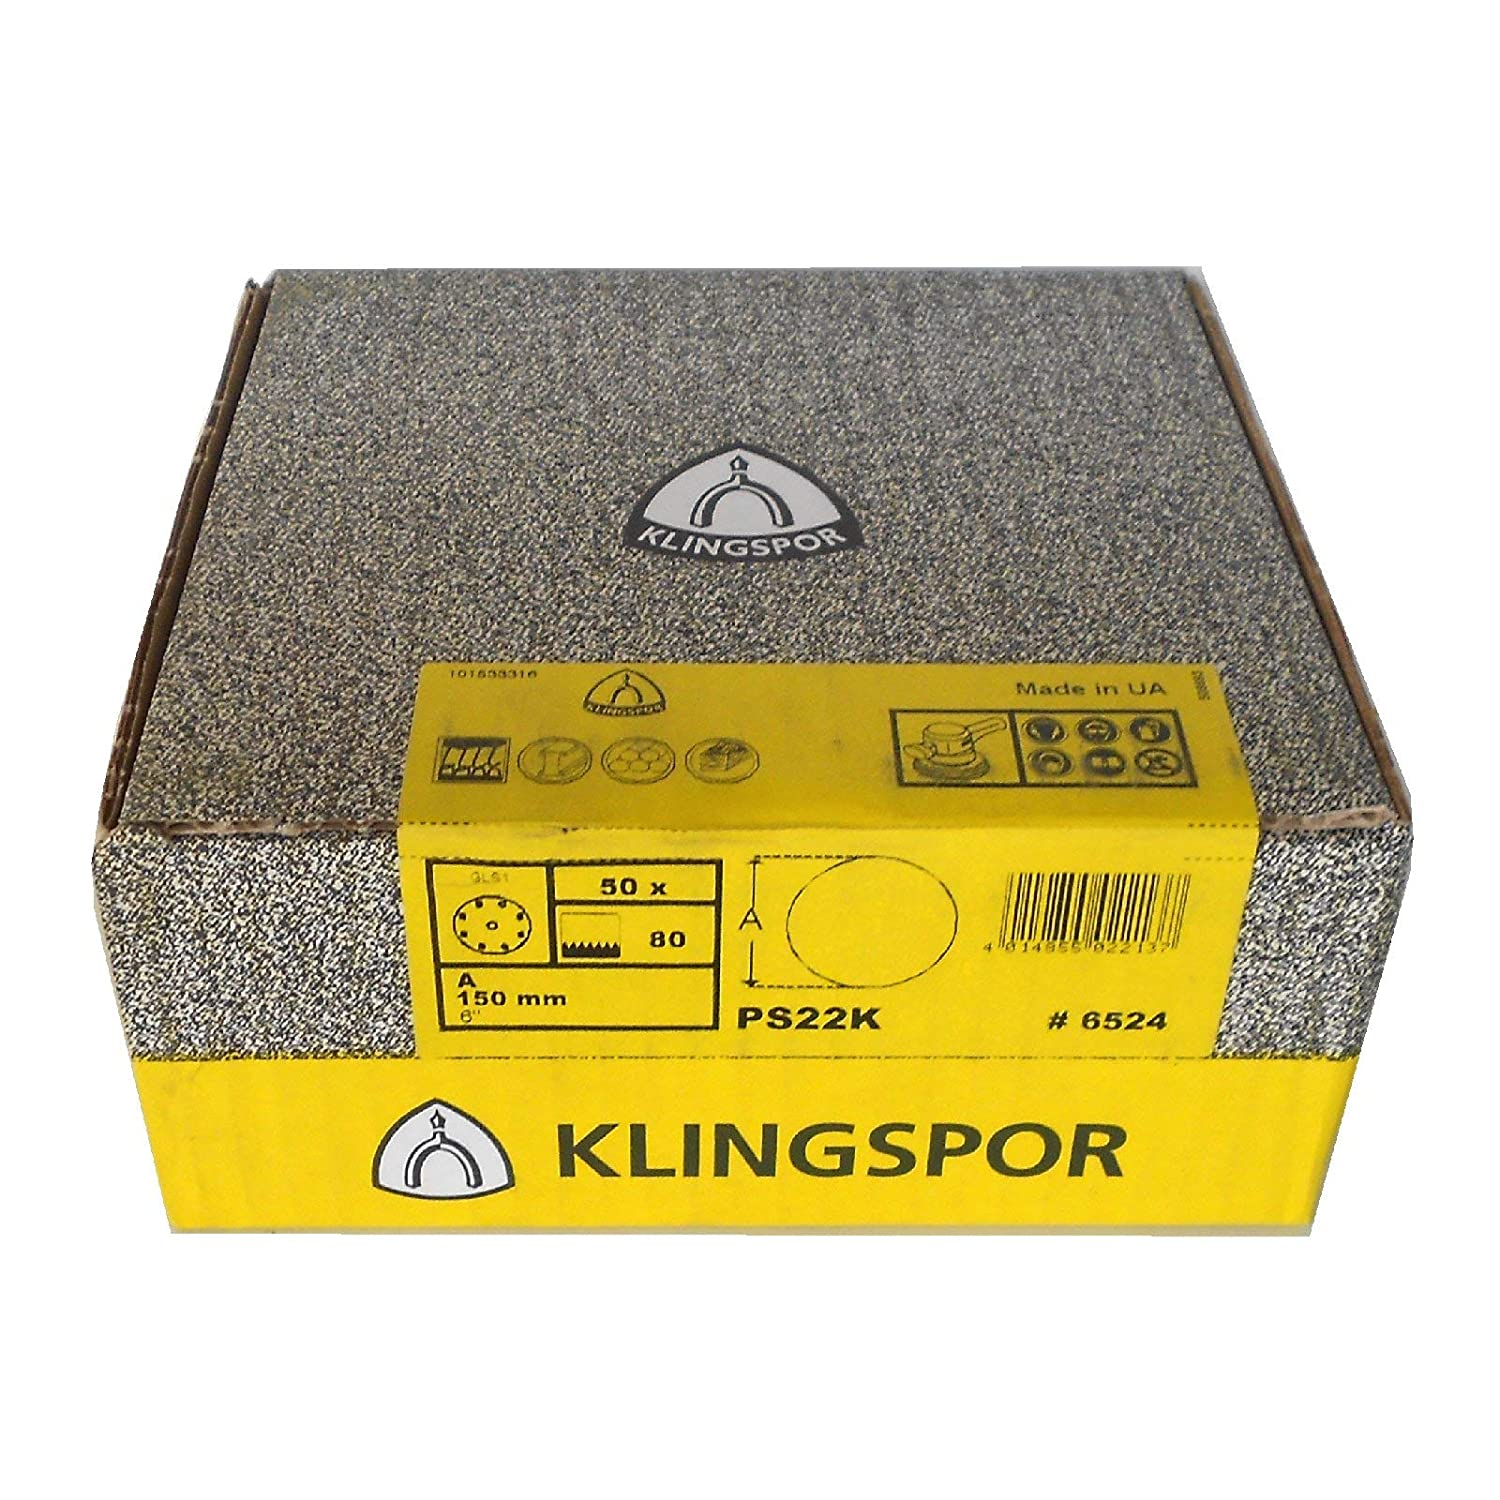 10 GLS 0 Pack of 10 Grit Size: Choice Klingspor PS 18 E Sanding Disc//Self-Adhesive Diameter 250 mm Unperforated